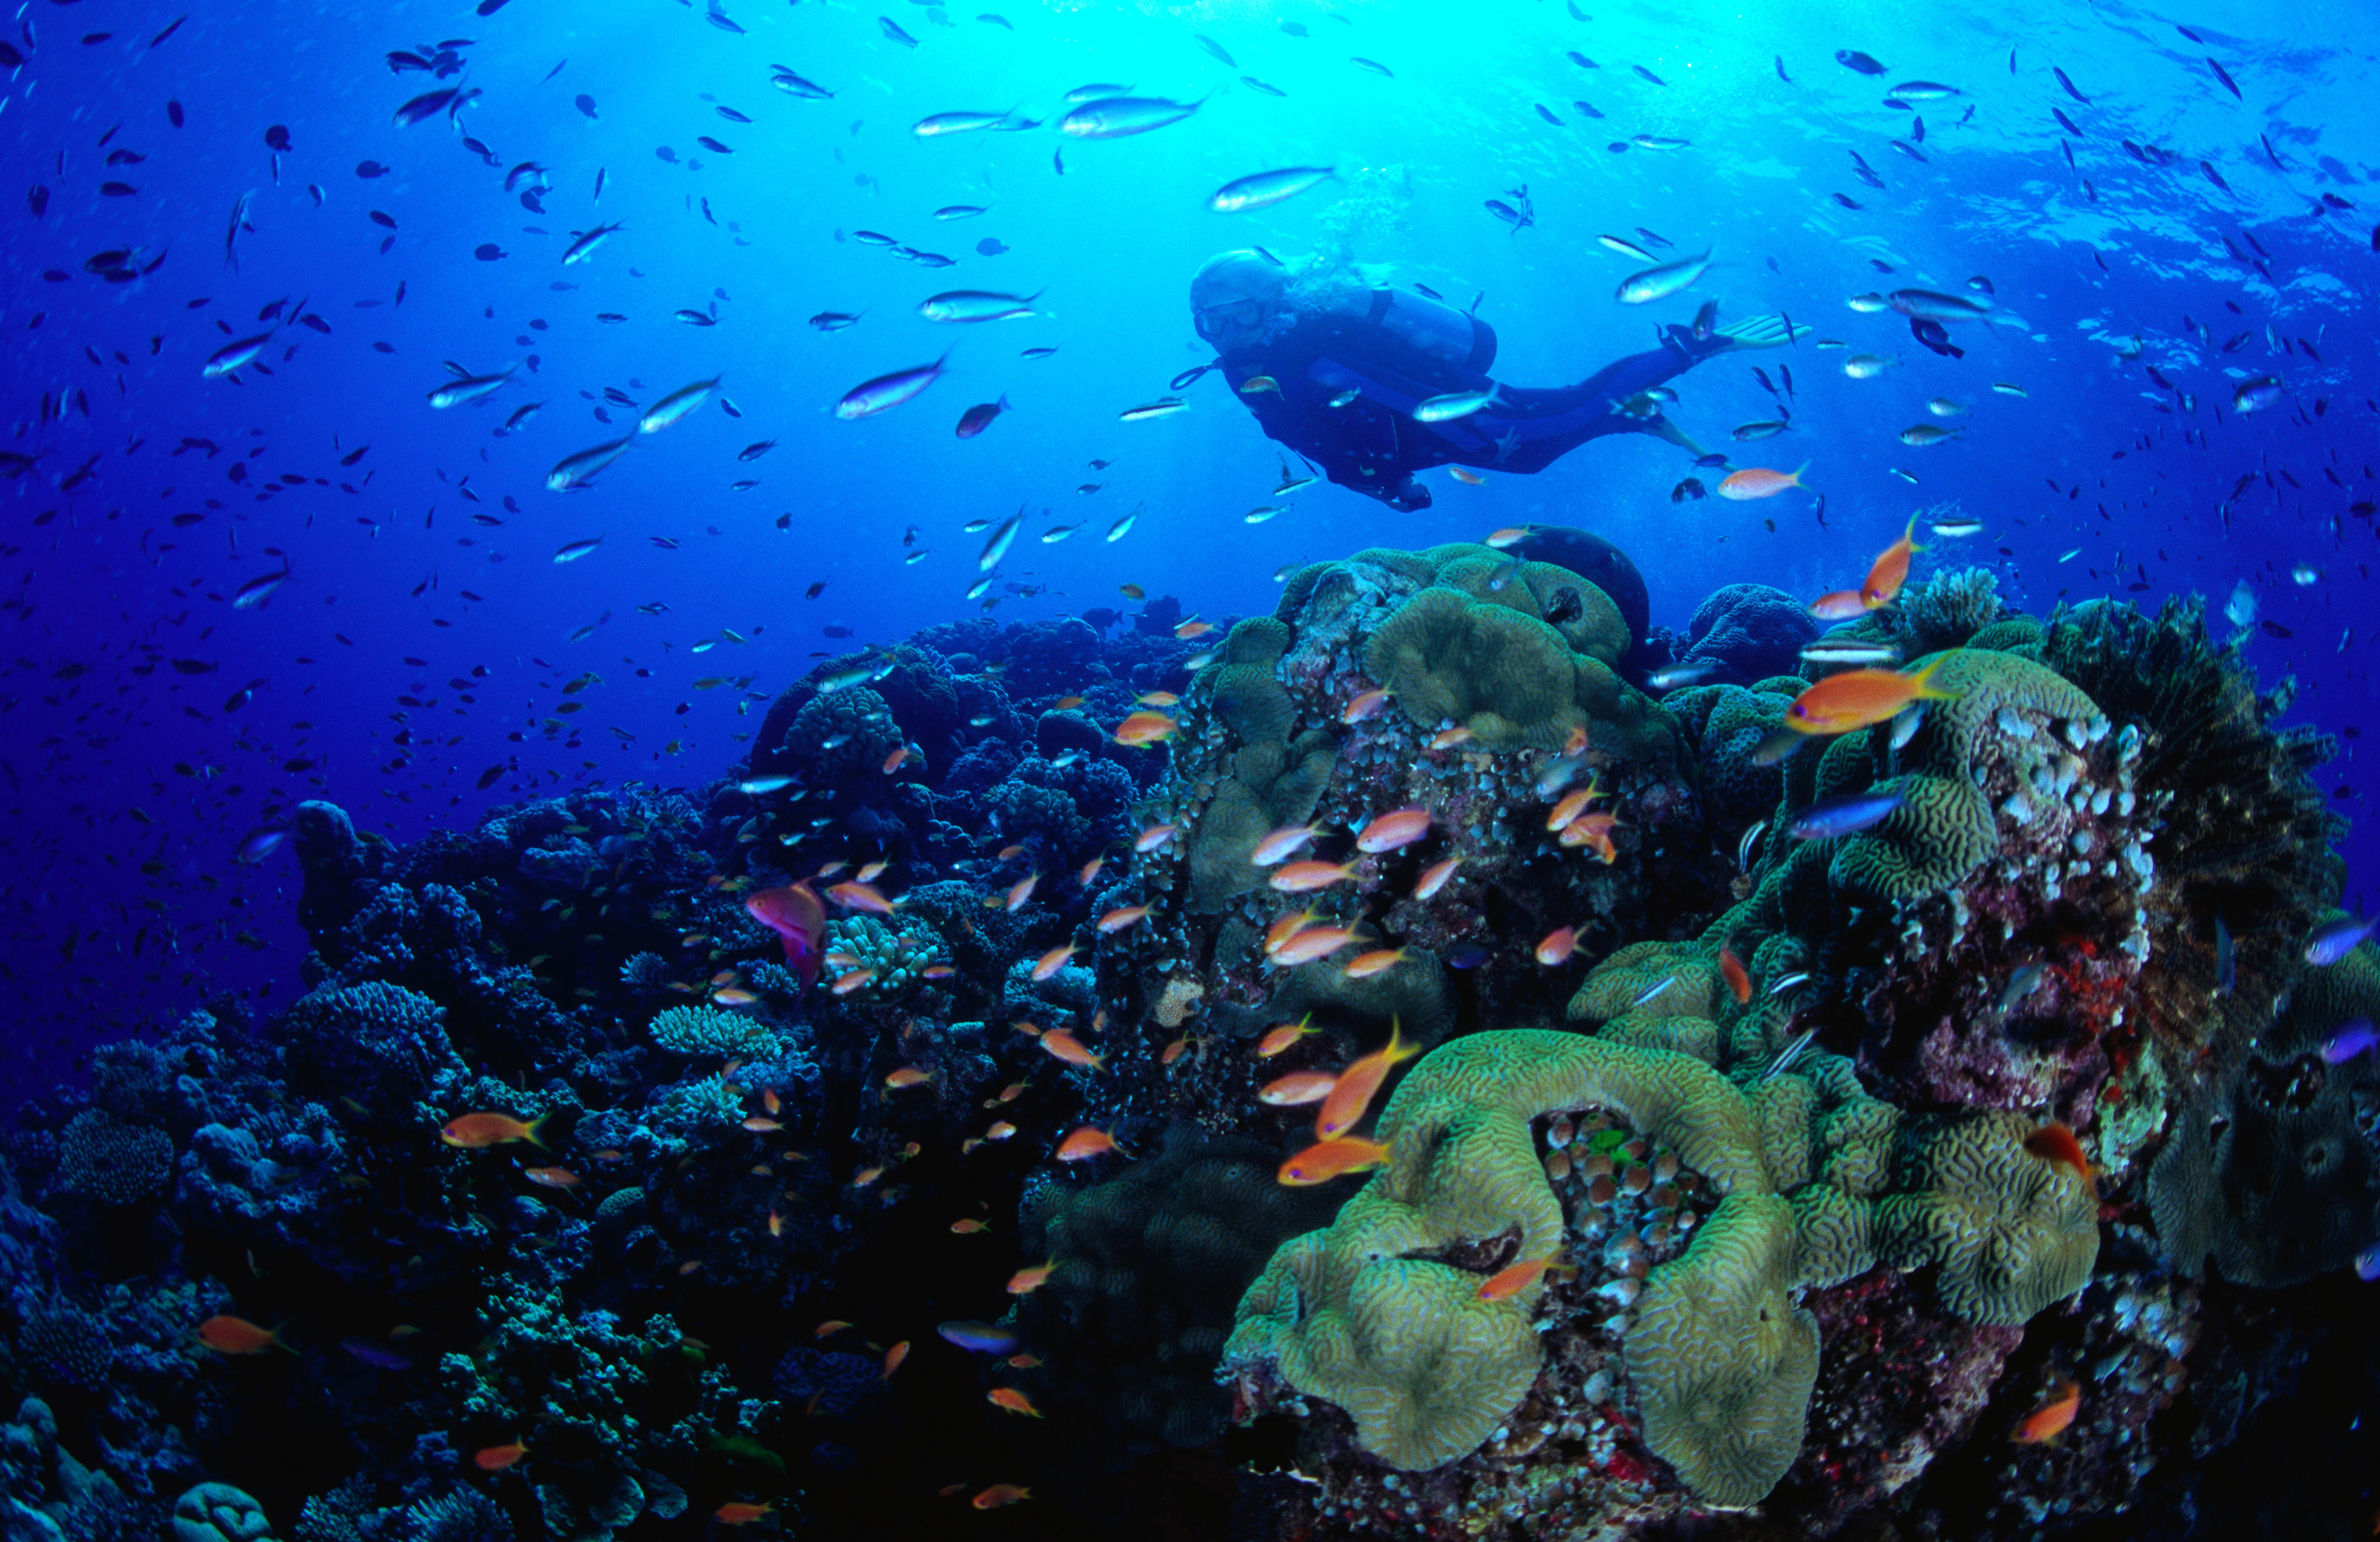 Diver swimming by coral and tropical fish.